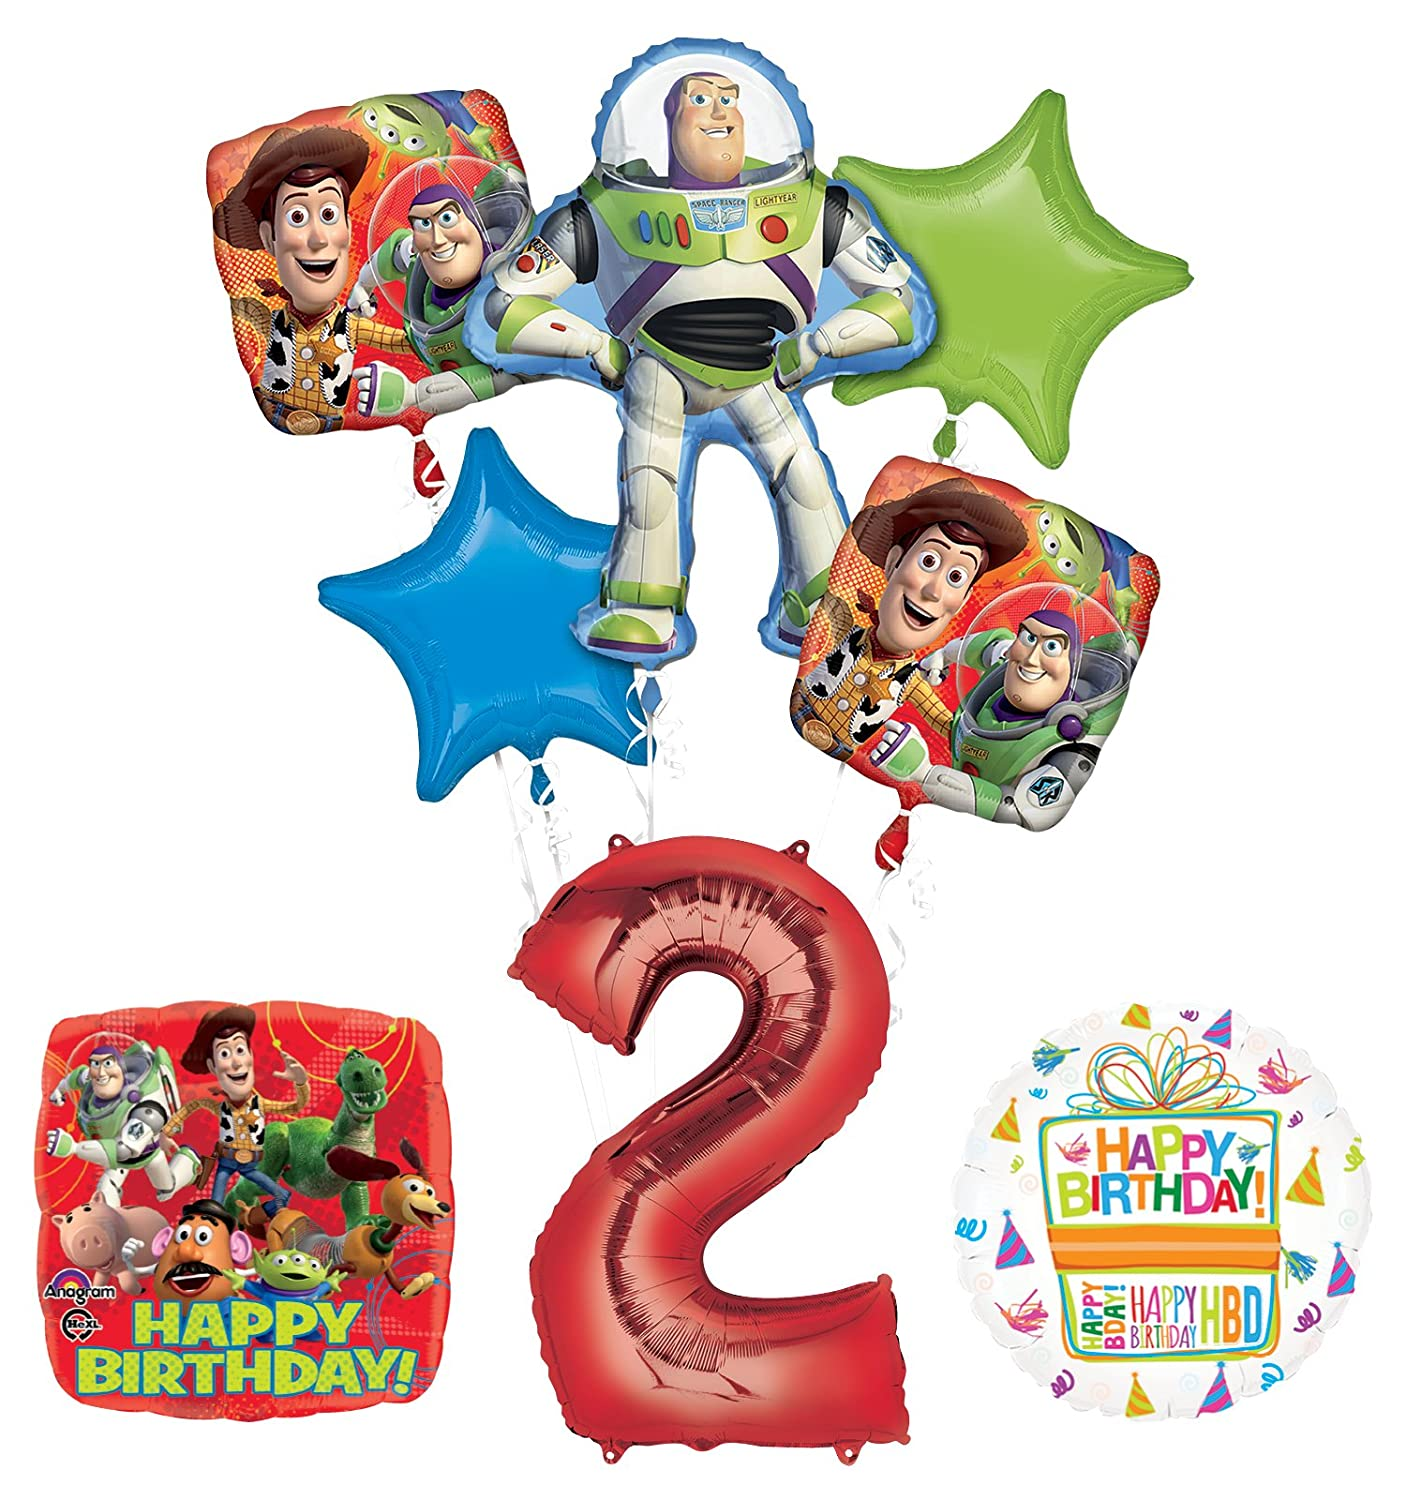 Toy Story 2nd Birthday Party Supplies and Balloon Bouquet Decorations Mayflower